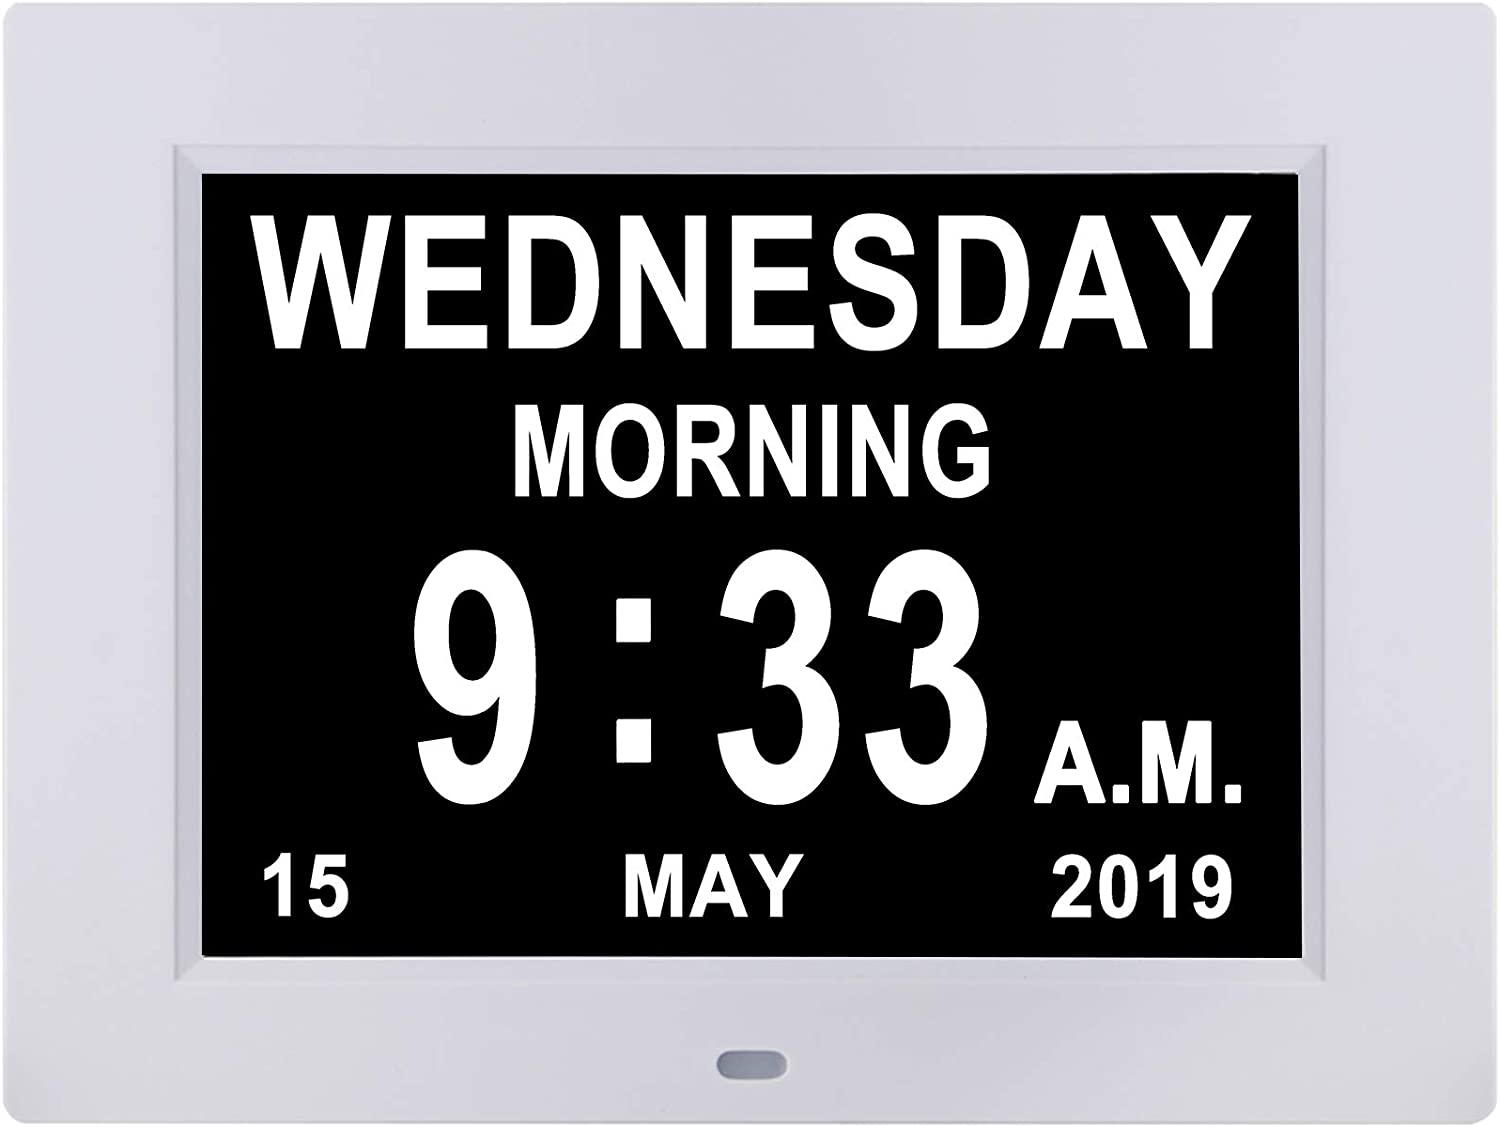 [Remote Control] Digital Day Calendar Clock 8inch 12 Alarms Non-Abbreviations Day & Month Electronic Dementia Alzheimer Vision Impaired Memory Loss Desk Wall Clock